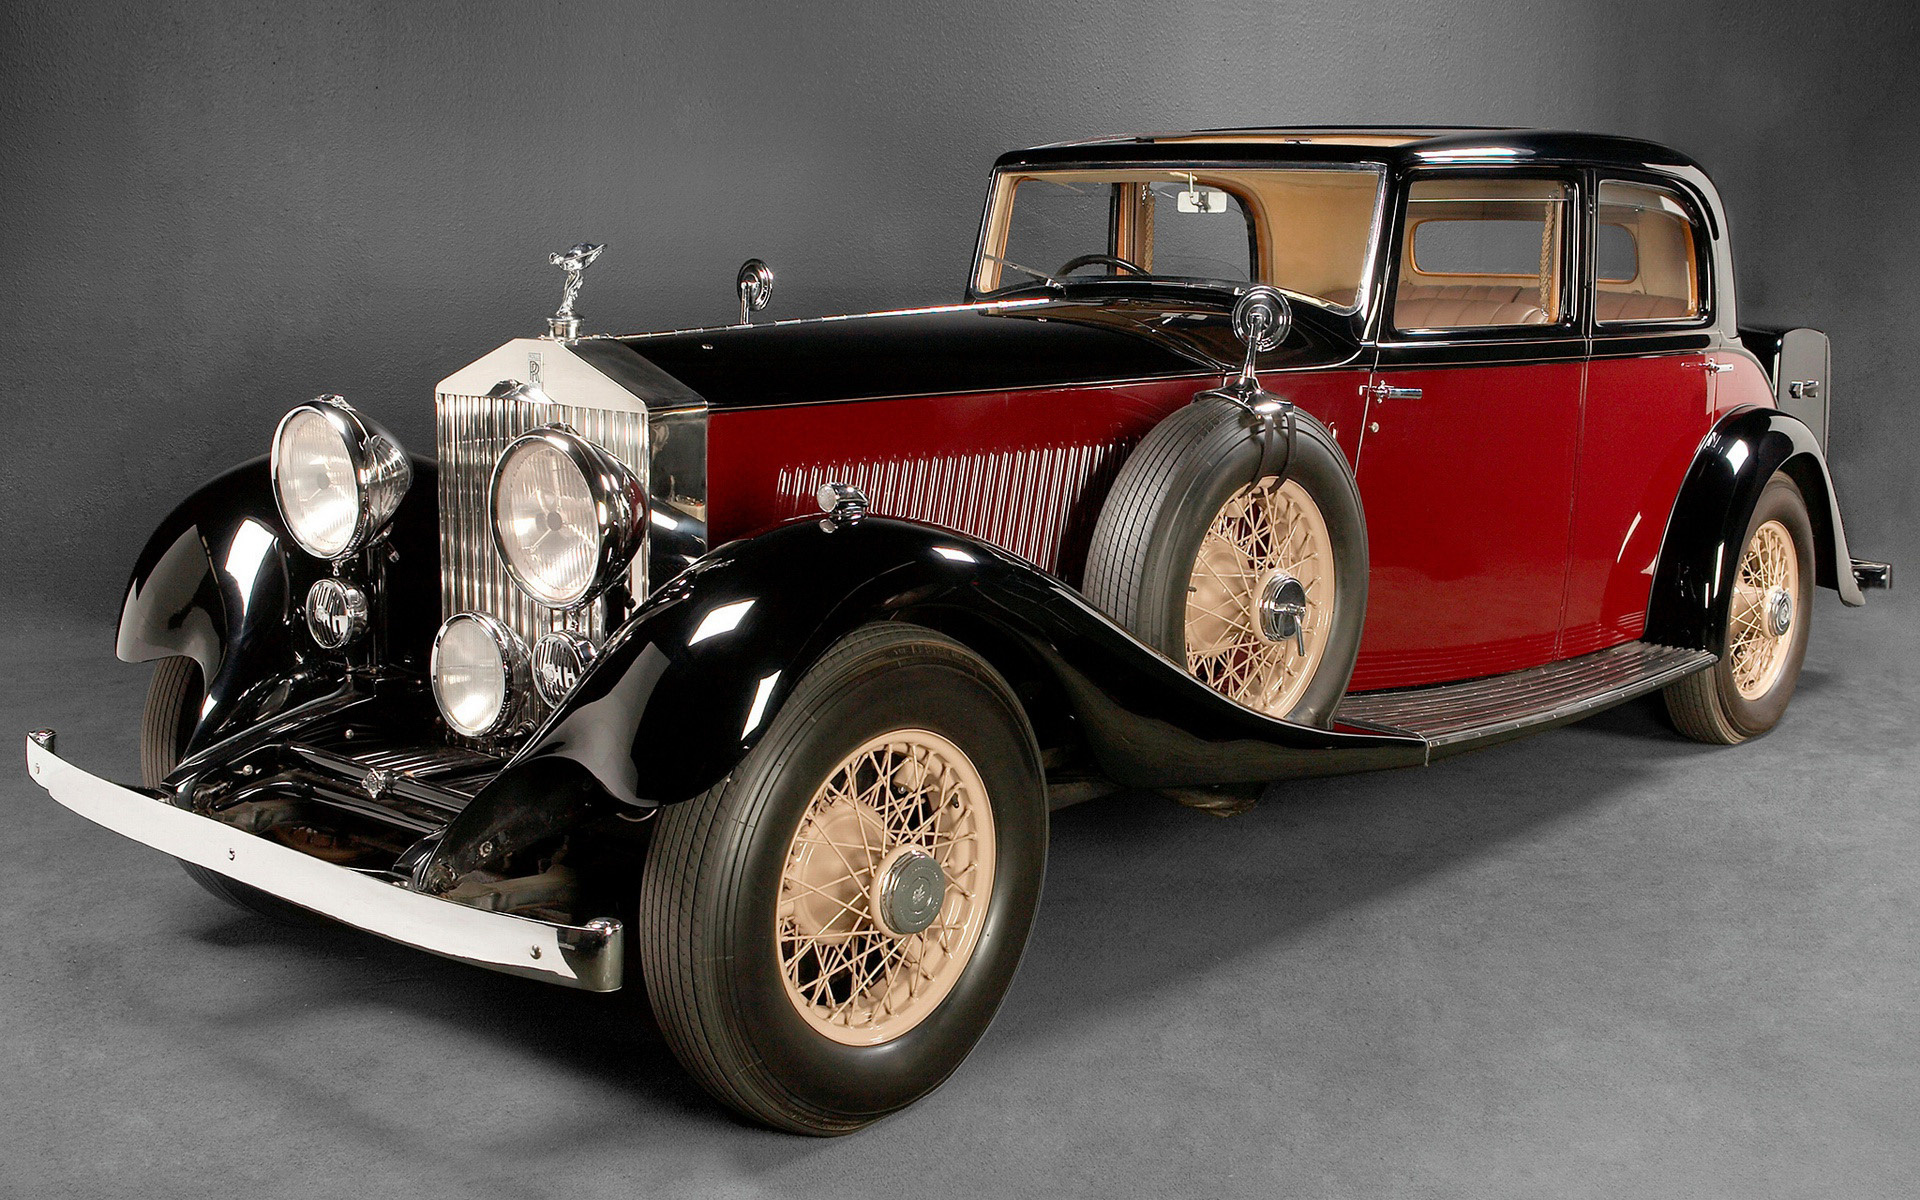 Amazing Name Of Old Cars Gallery - Classic Cars Ideas - boiq.info